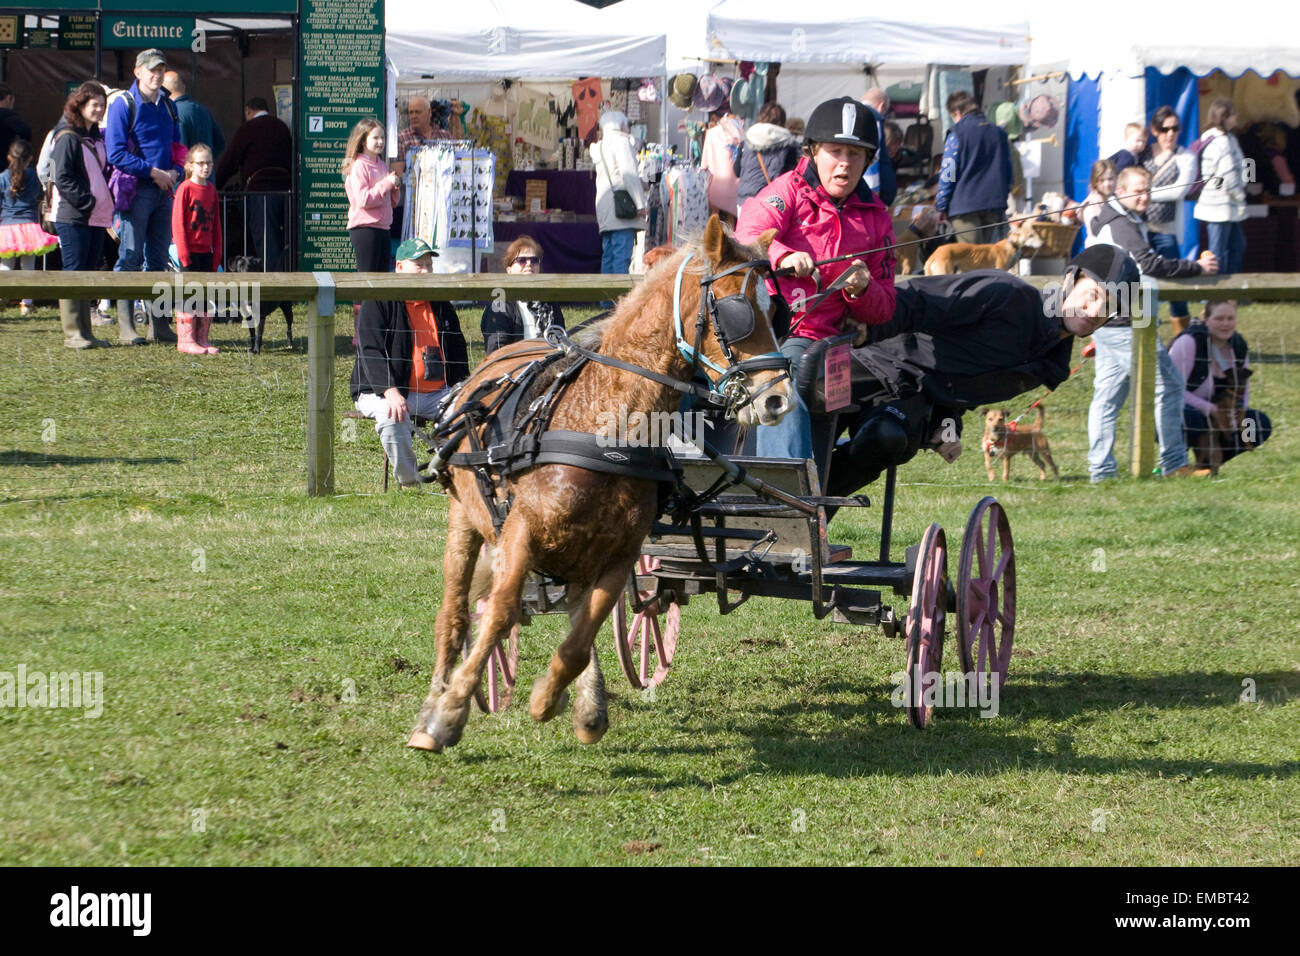 Double Harness Scurry Driving An Equestrian sport - Stock Image